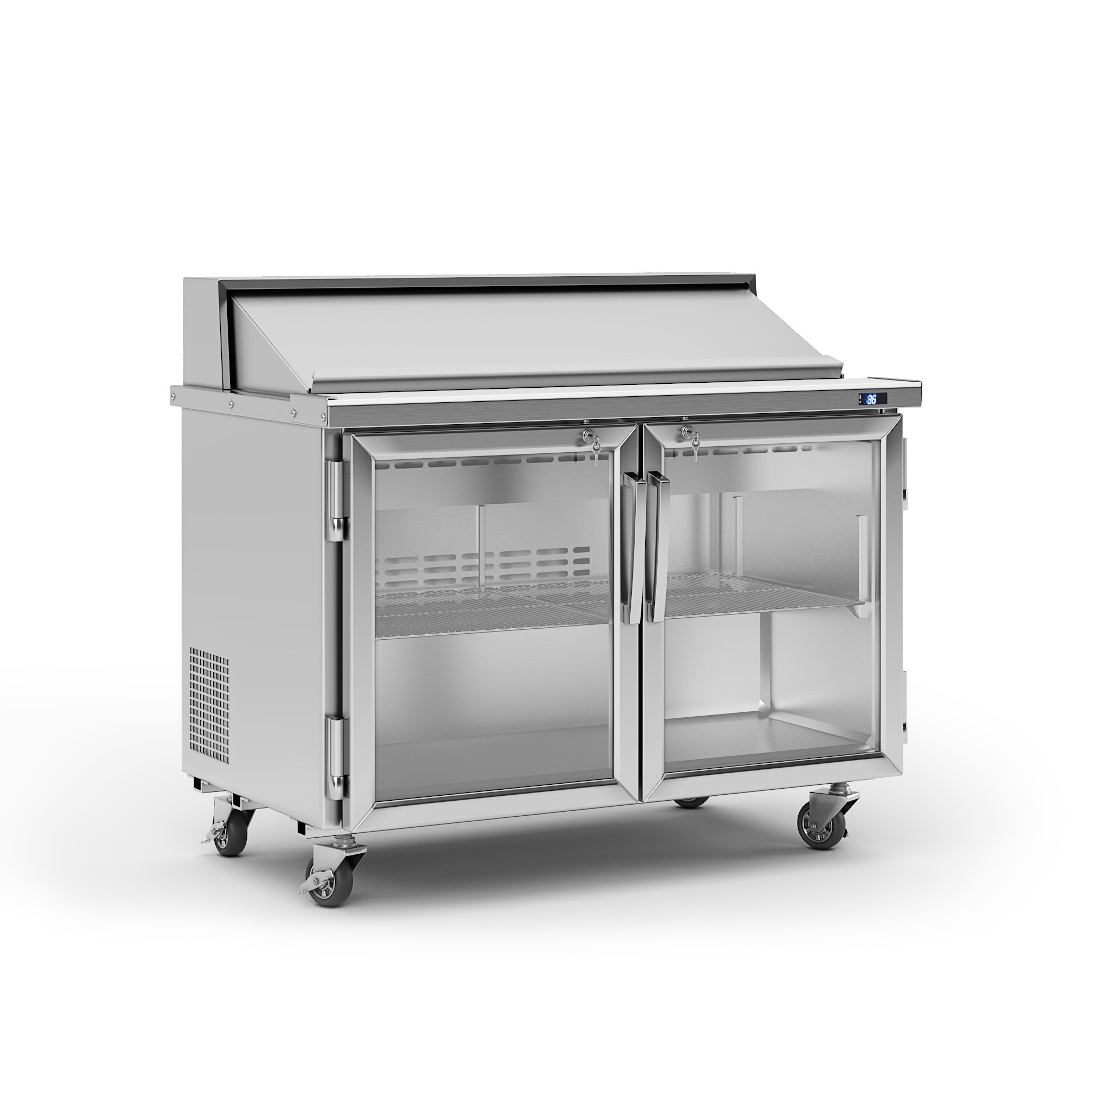 3d visualization white background rendering food equipment unit PST 48 G N 2